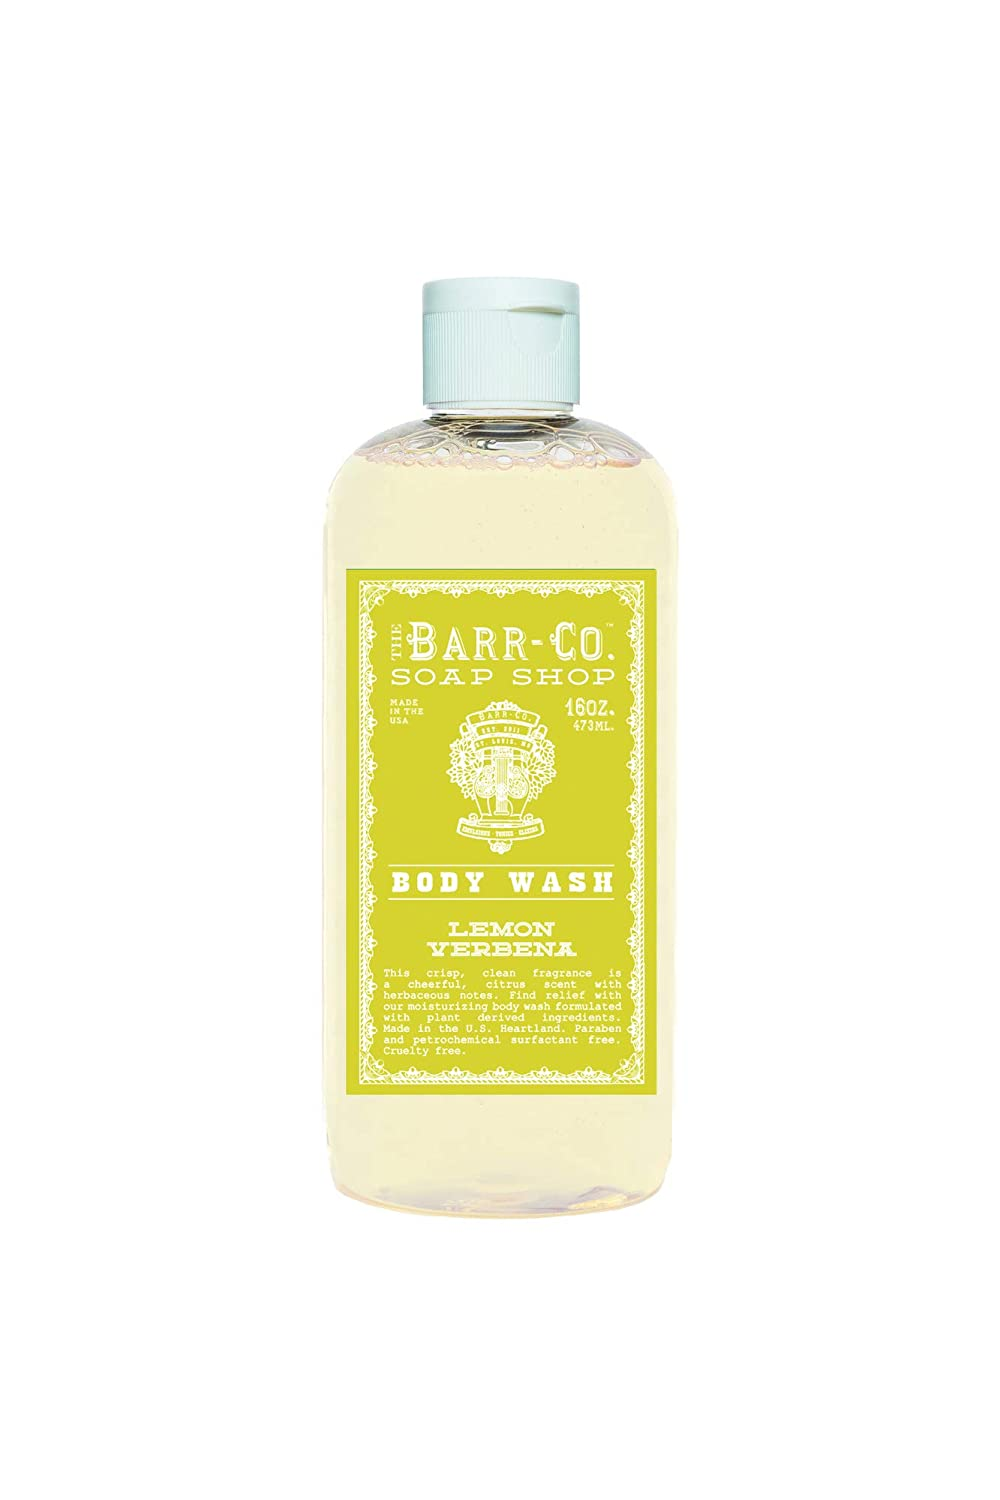 Barr-Co. Body Wash (Lemon Verbena)